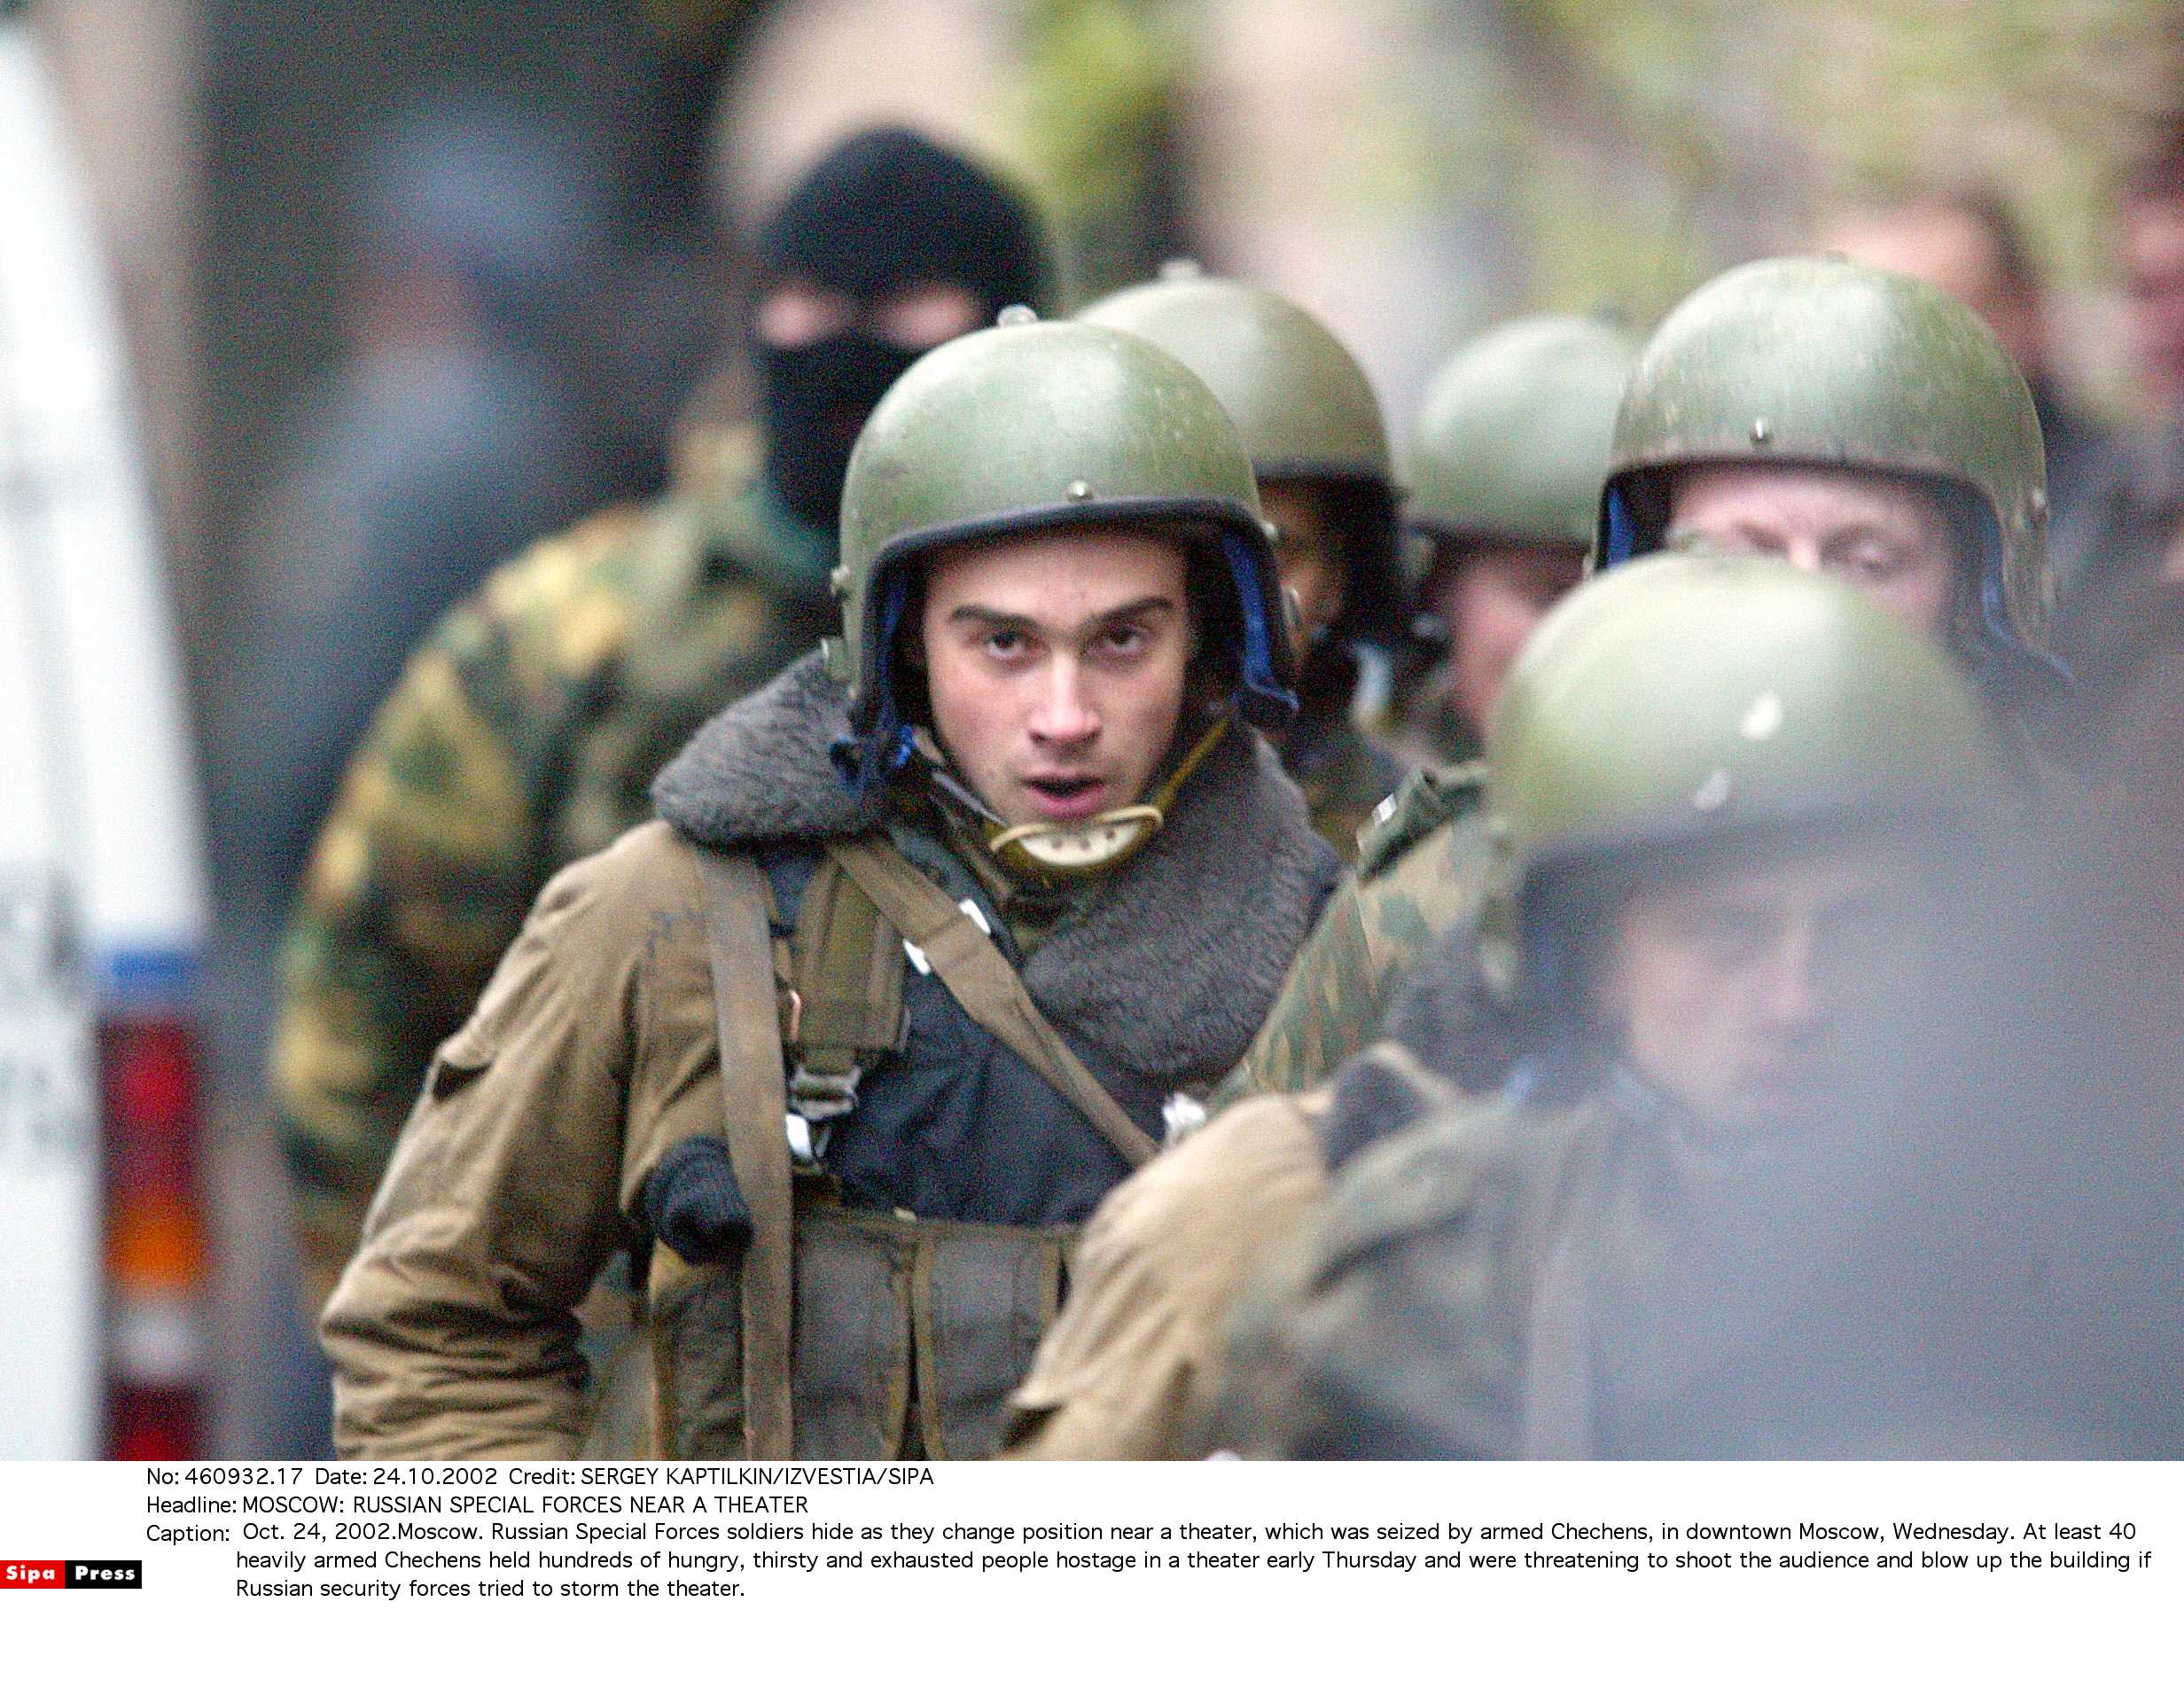 MOSCOW: RUSSIAN SPECIAL FORCES NEAR A THEATER